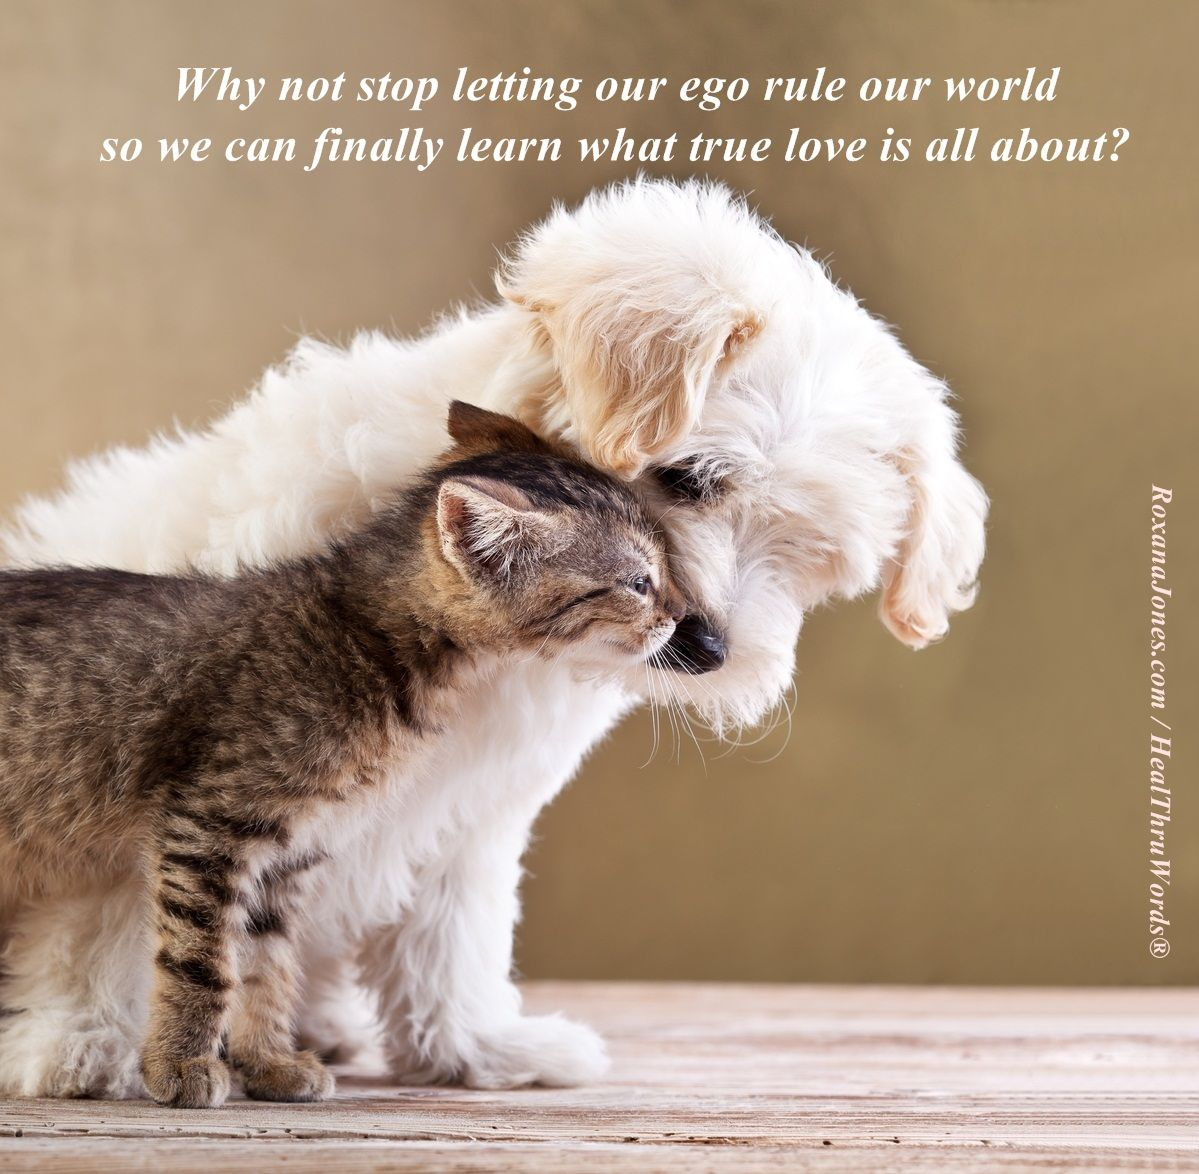 Explore Quotes About Cats, Great Quotes, And More!